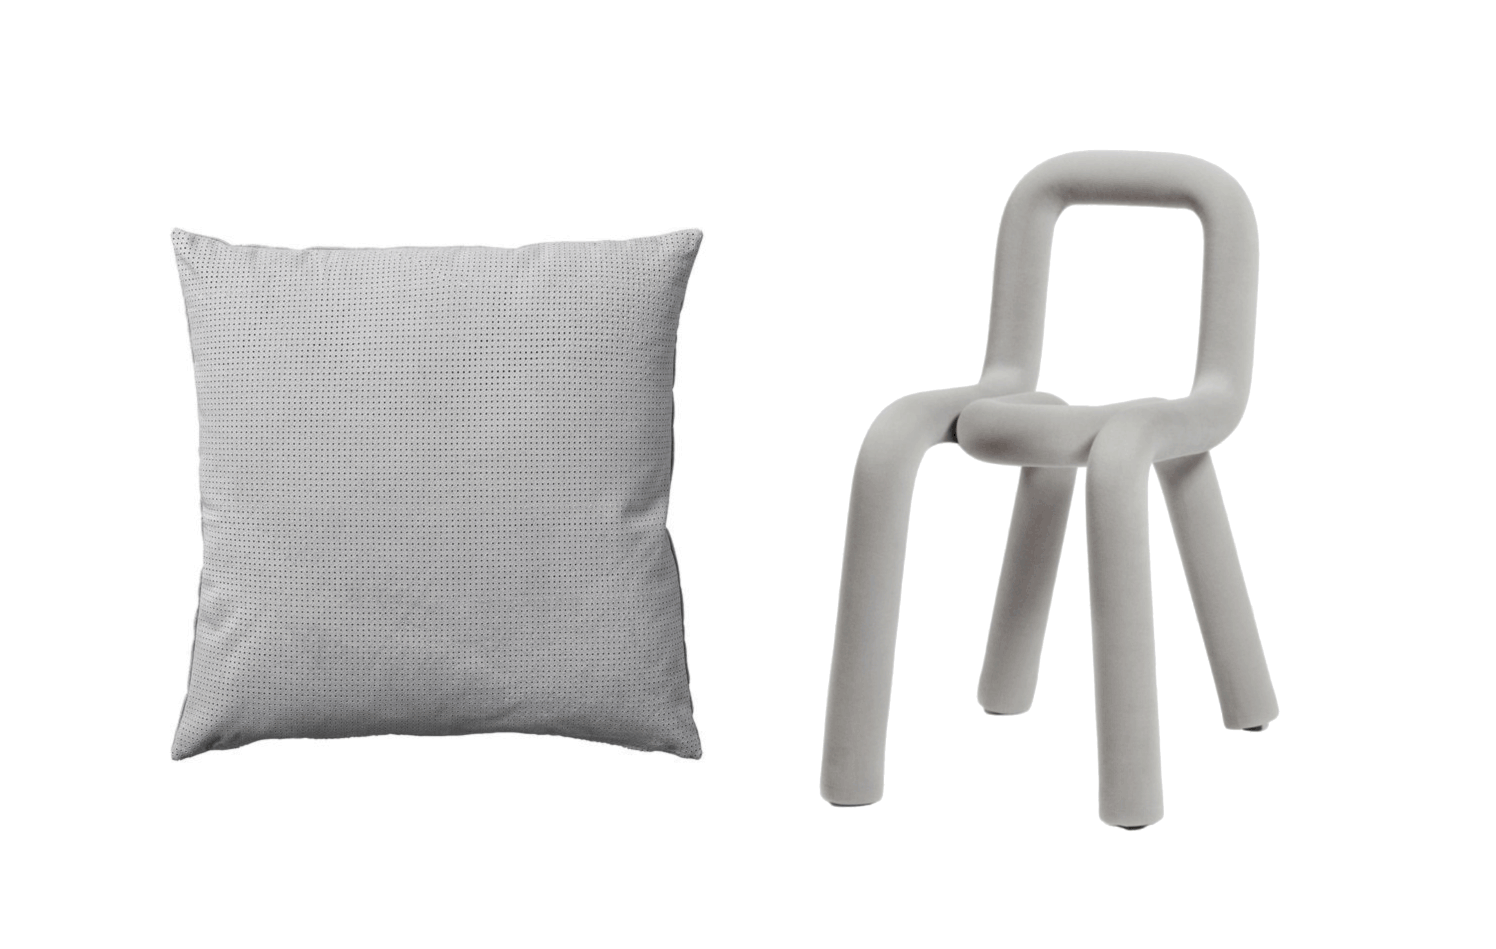 PUNCTA cushion by  Aytm   Chaise Bold by  Moustache